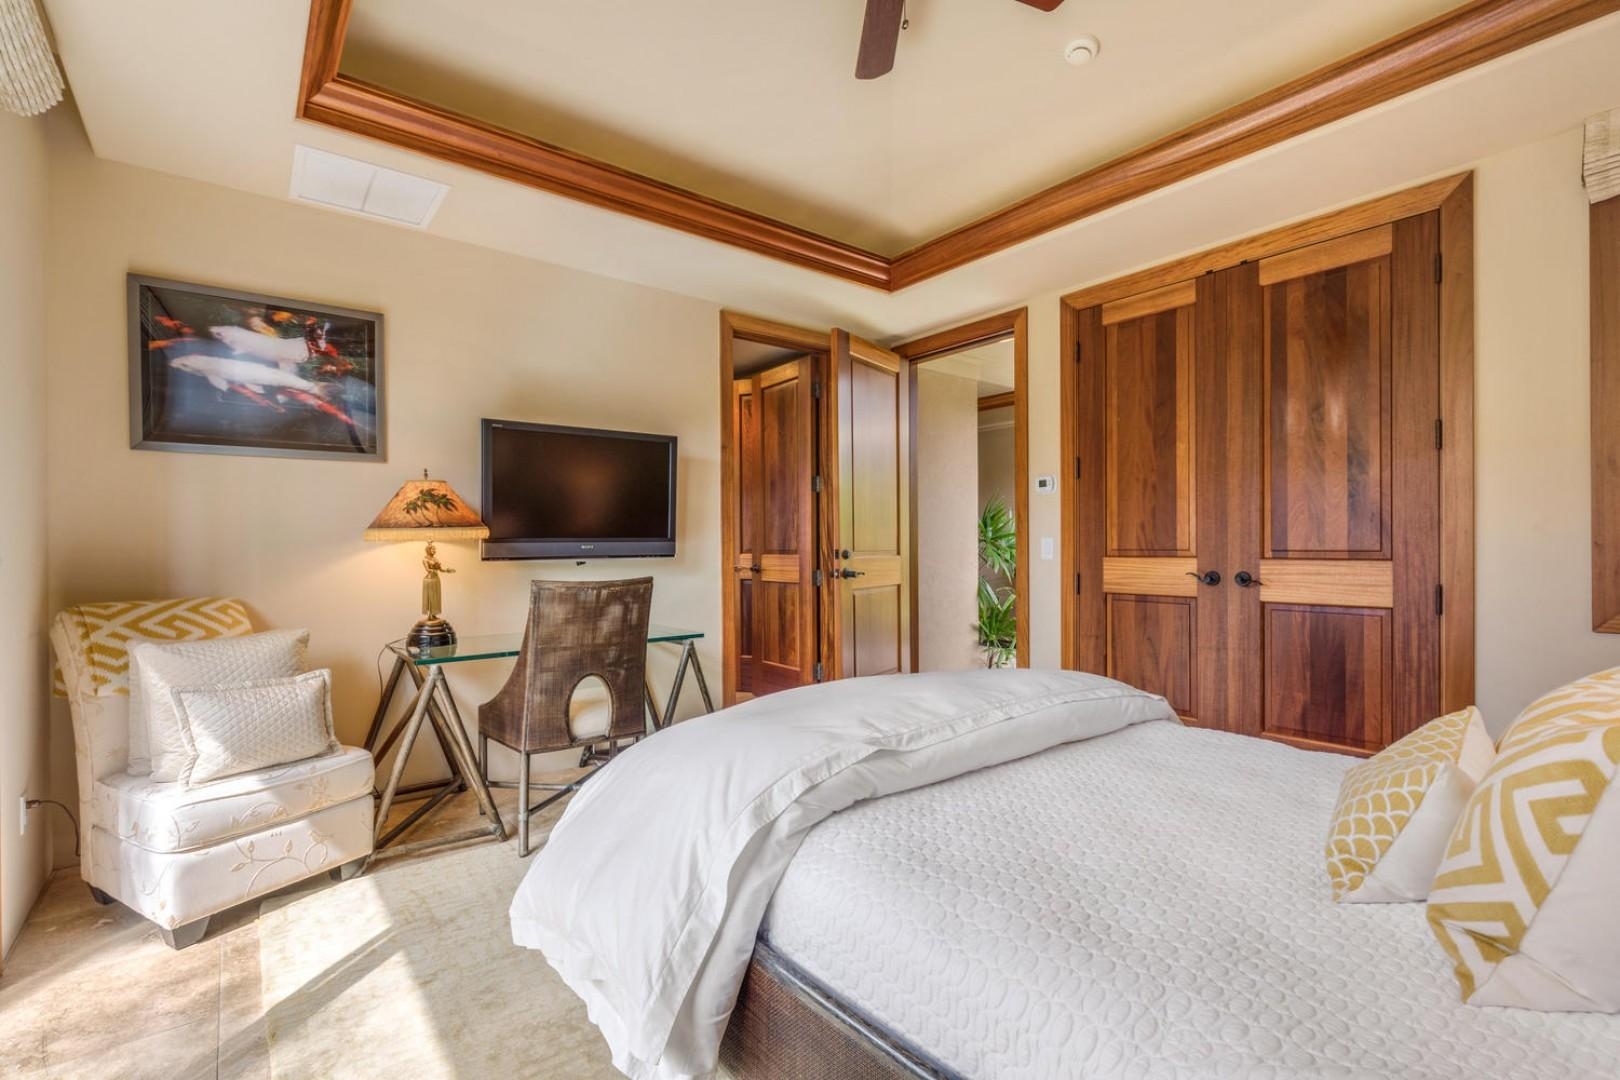 First guest suite, alternate view showcasing wall-mounted flat screen television.